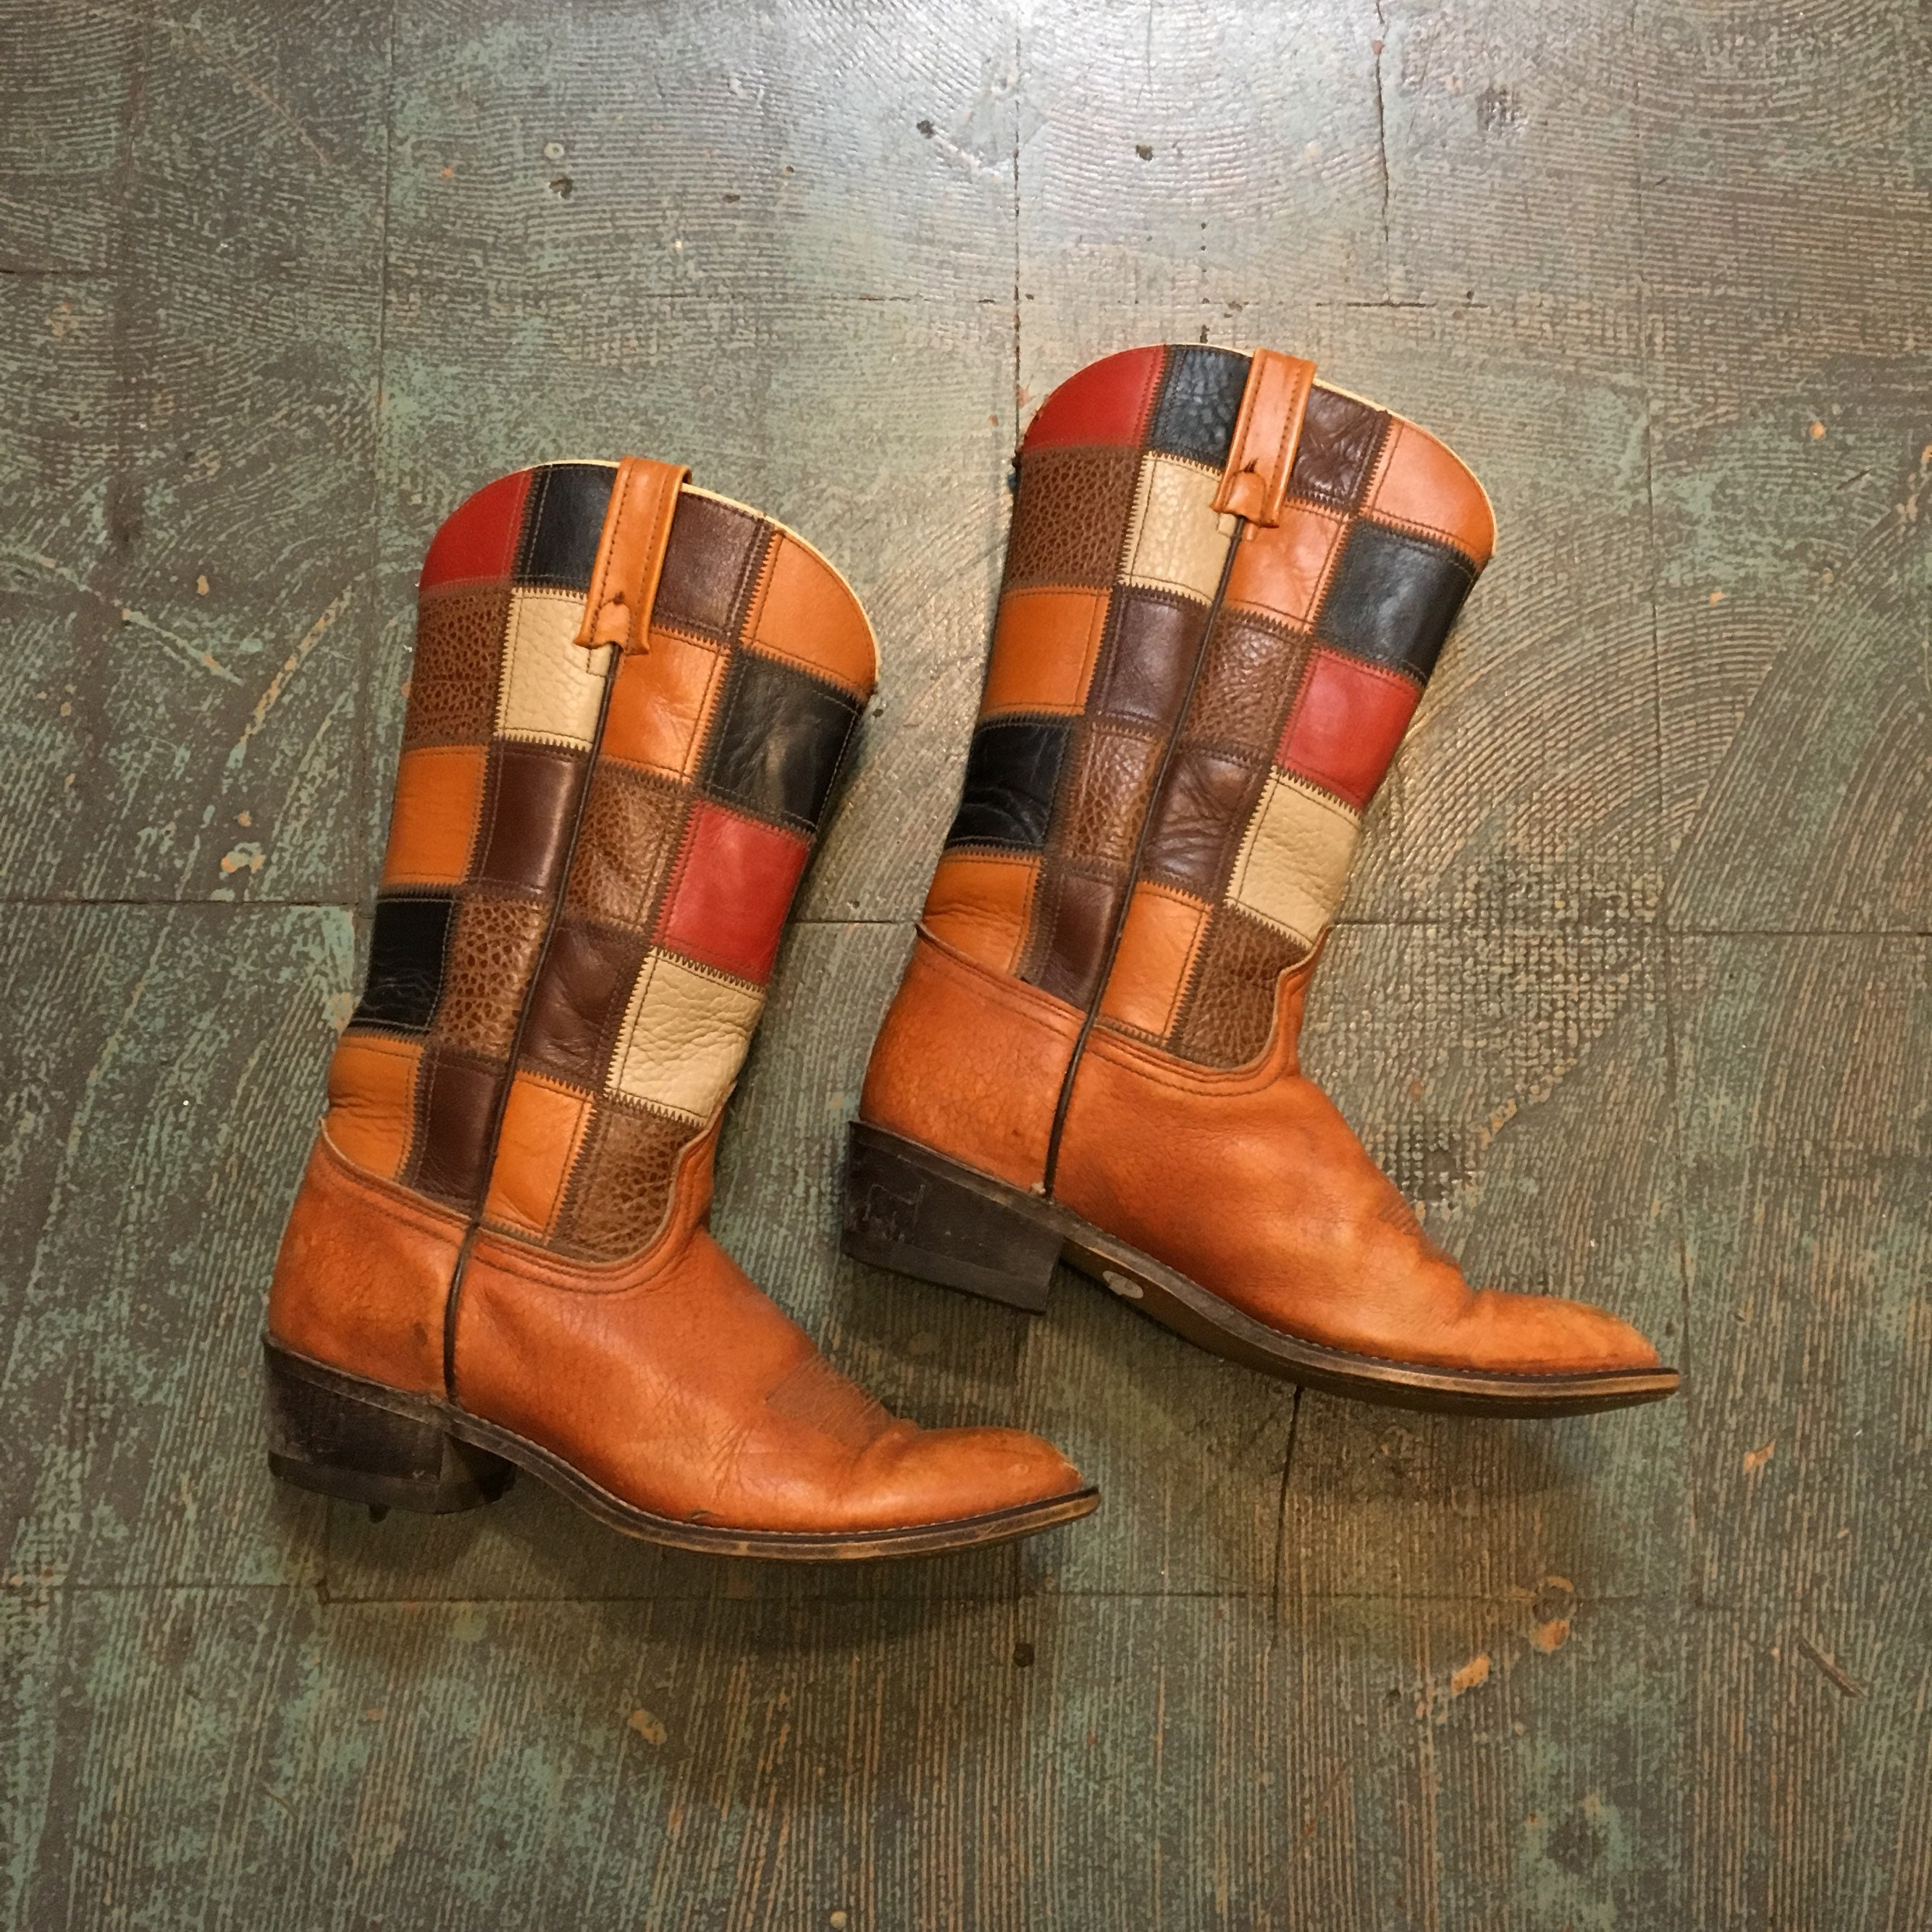 38ae1cfdadd Vintage 70s Acme patchwork leather campus boots // made in USA ...